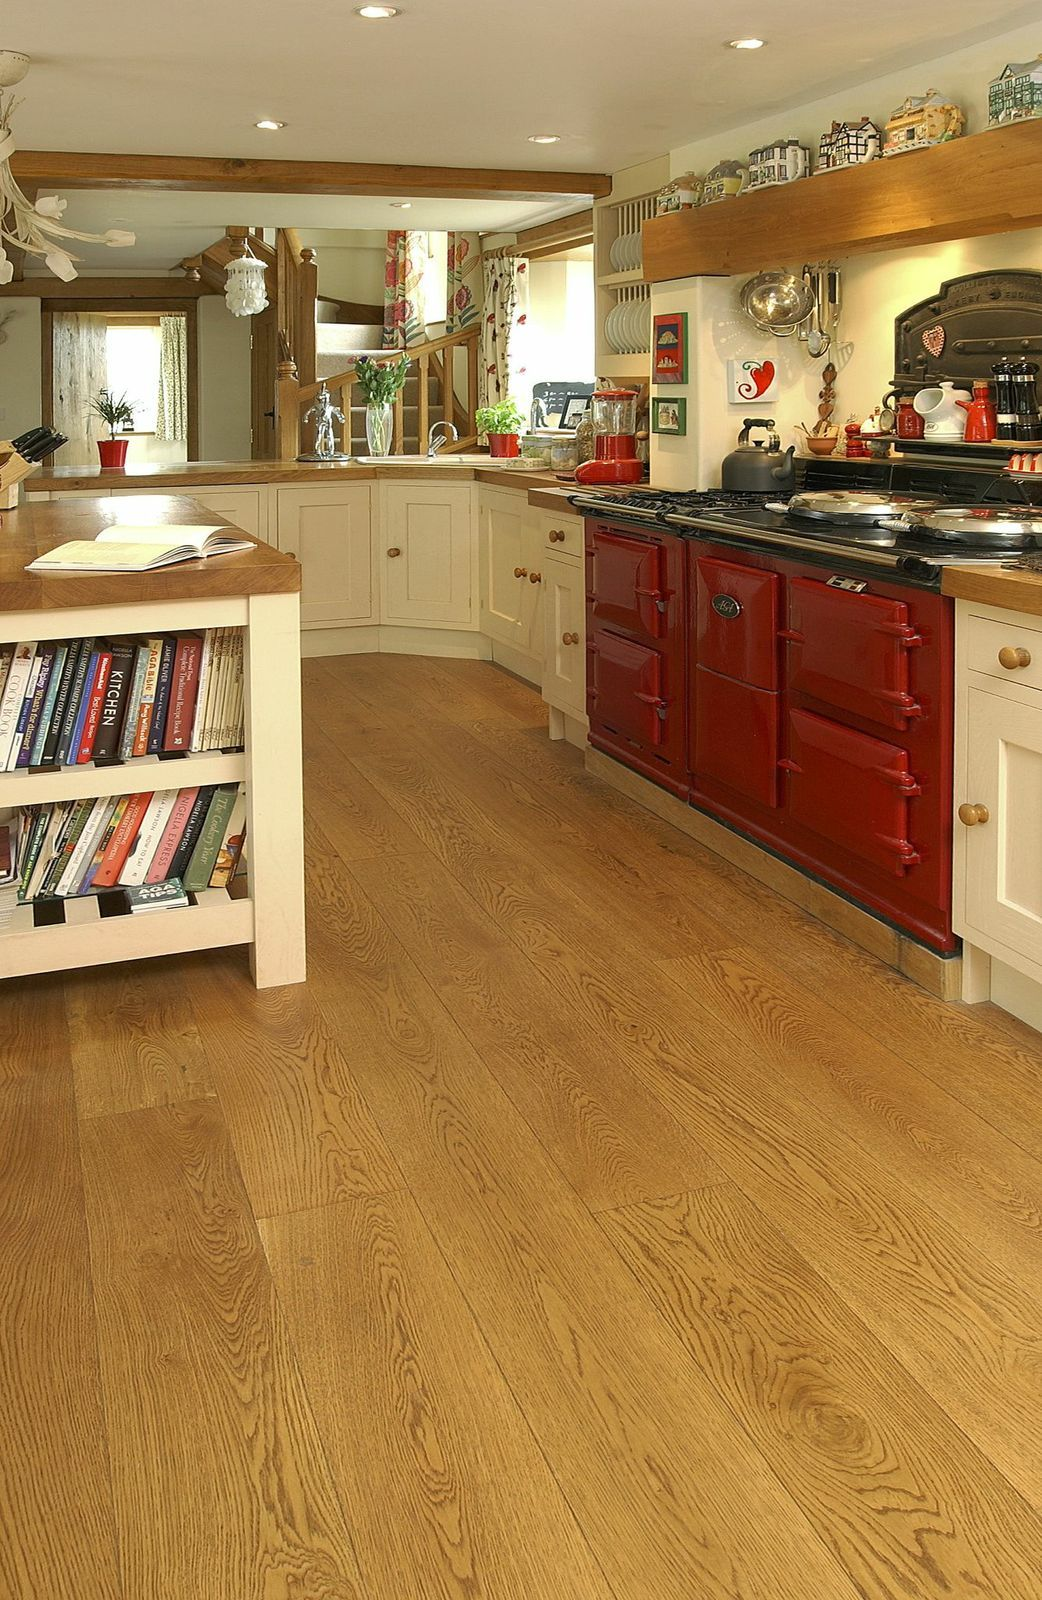 Cognac Preoiled Engineered Oak in the kitchen. Suitable